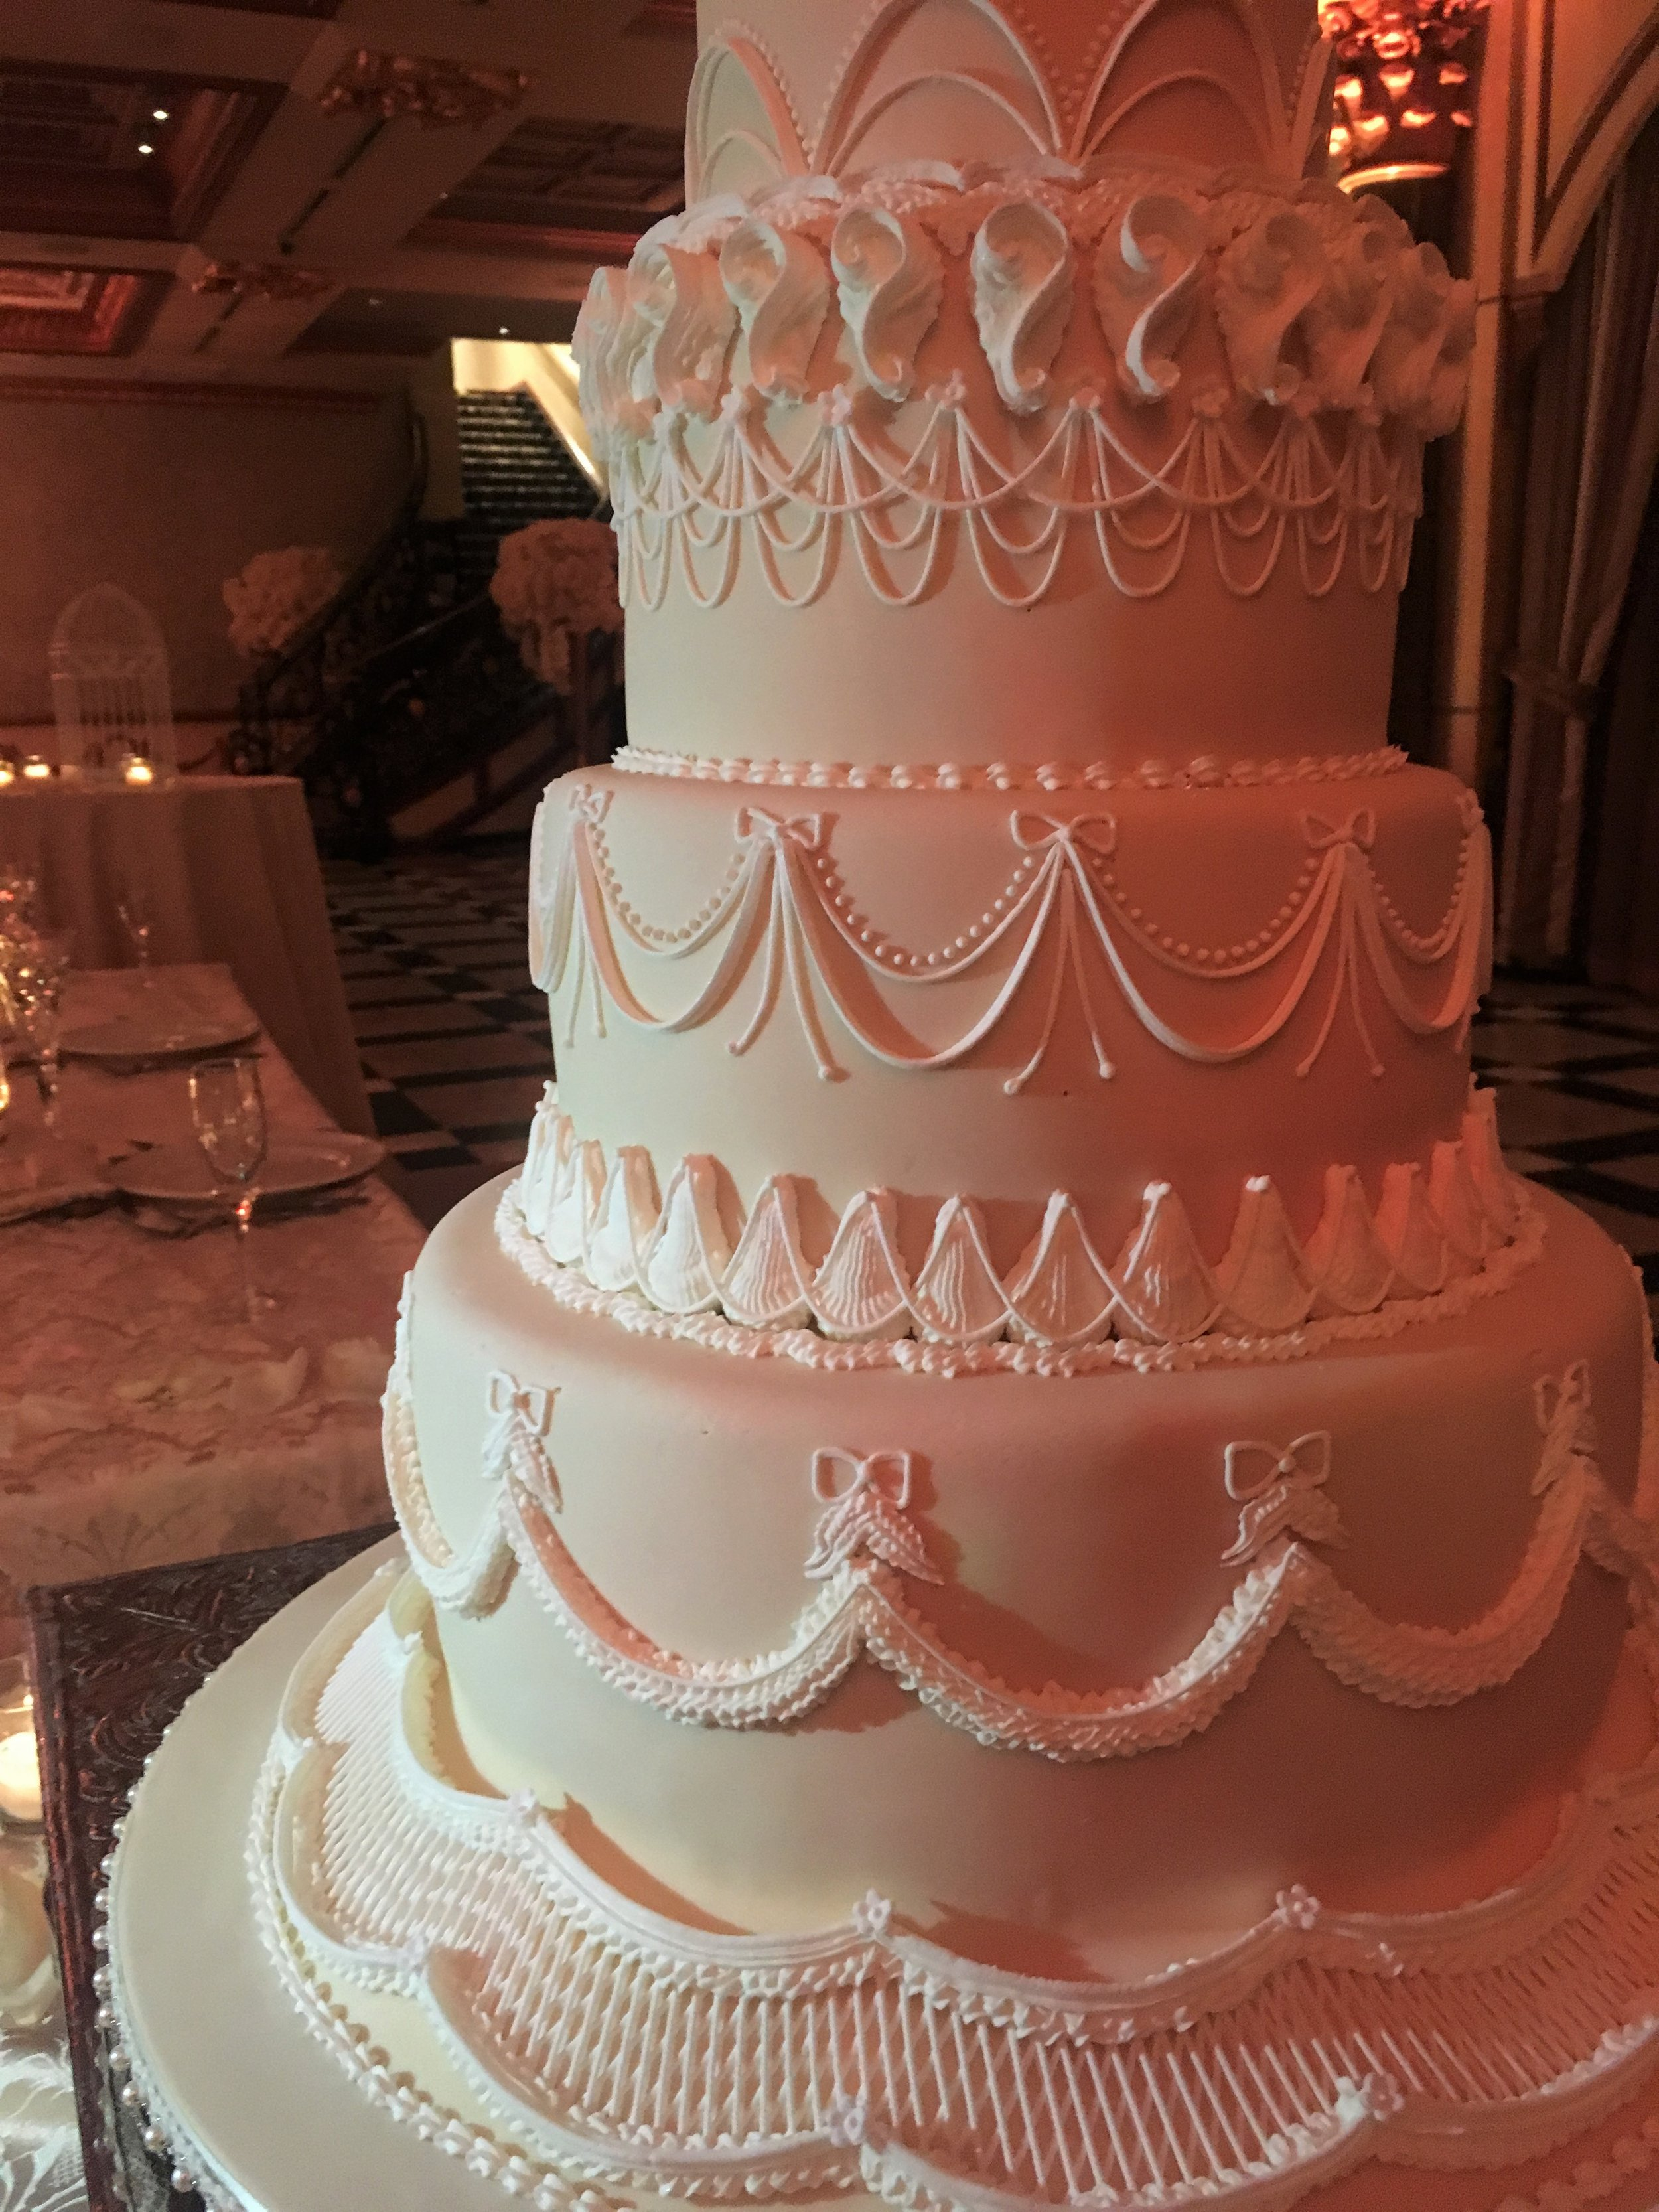 Embellishments with royal icing